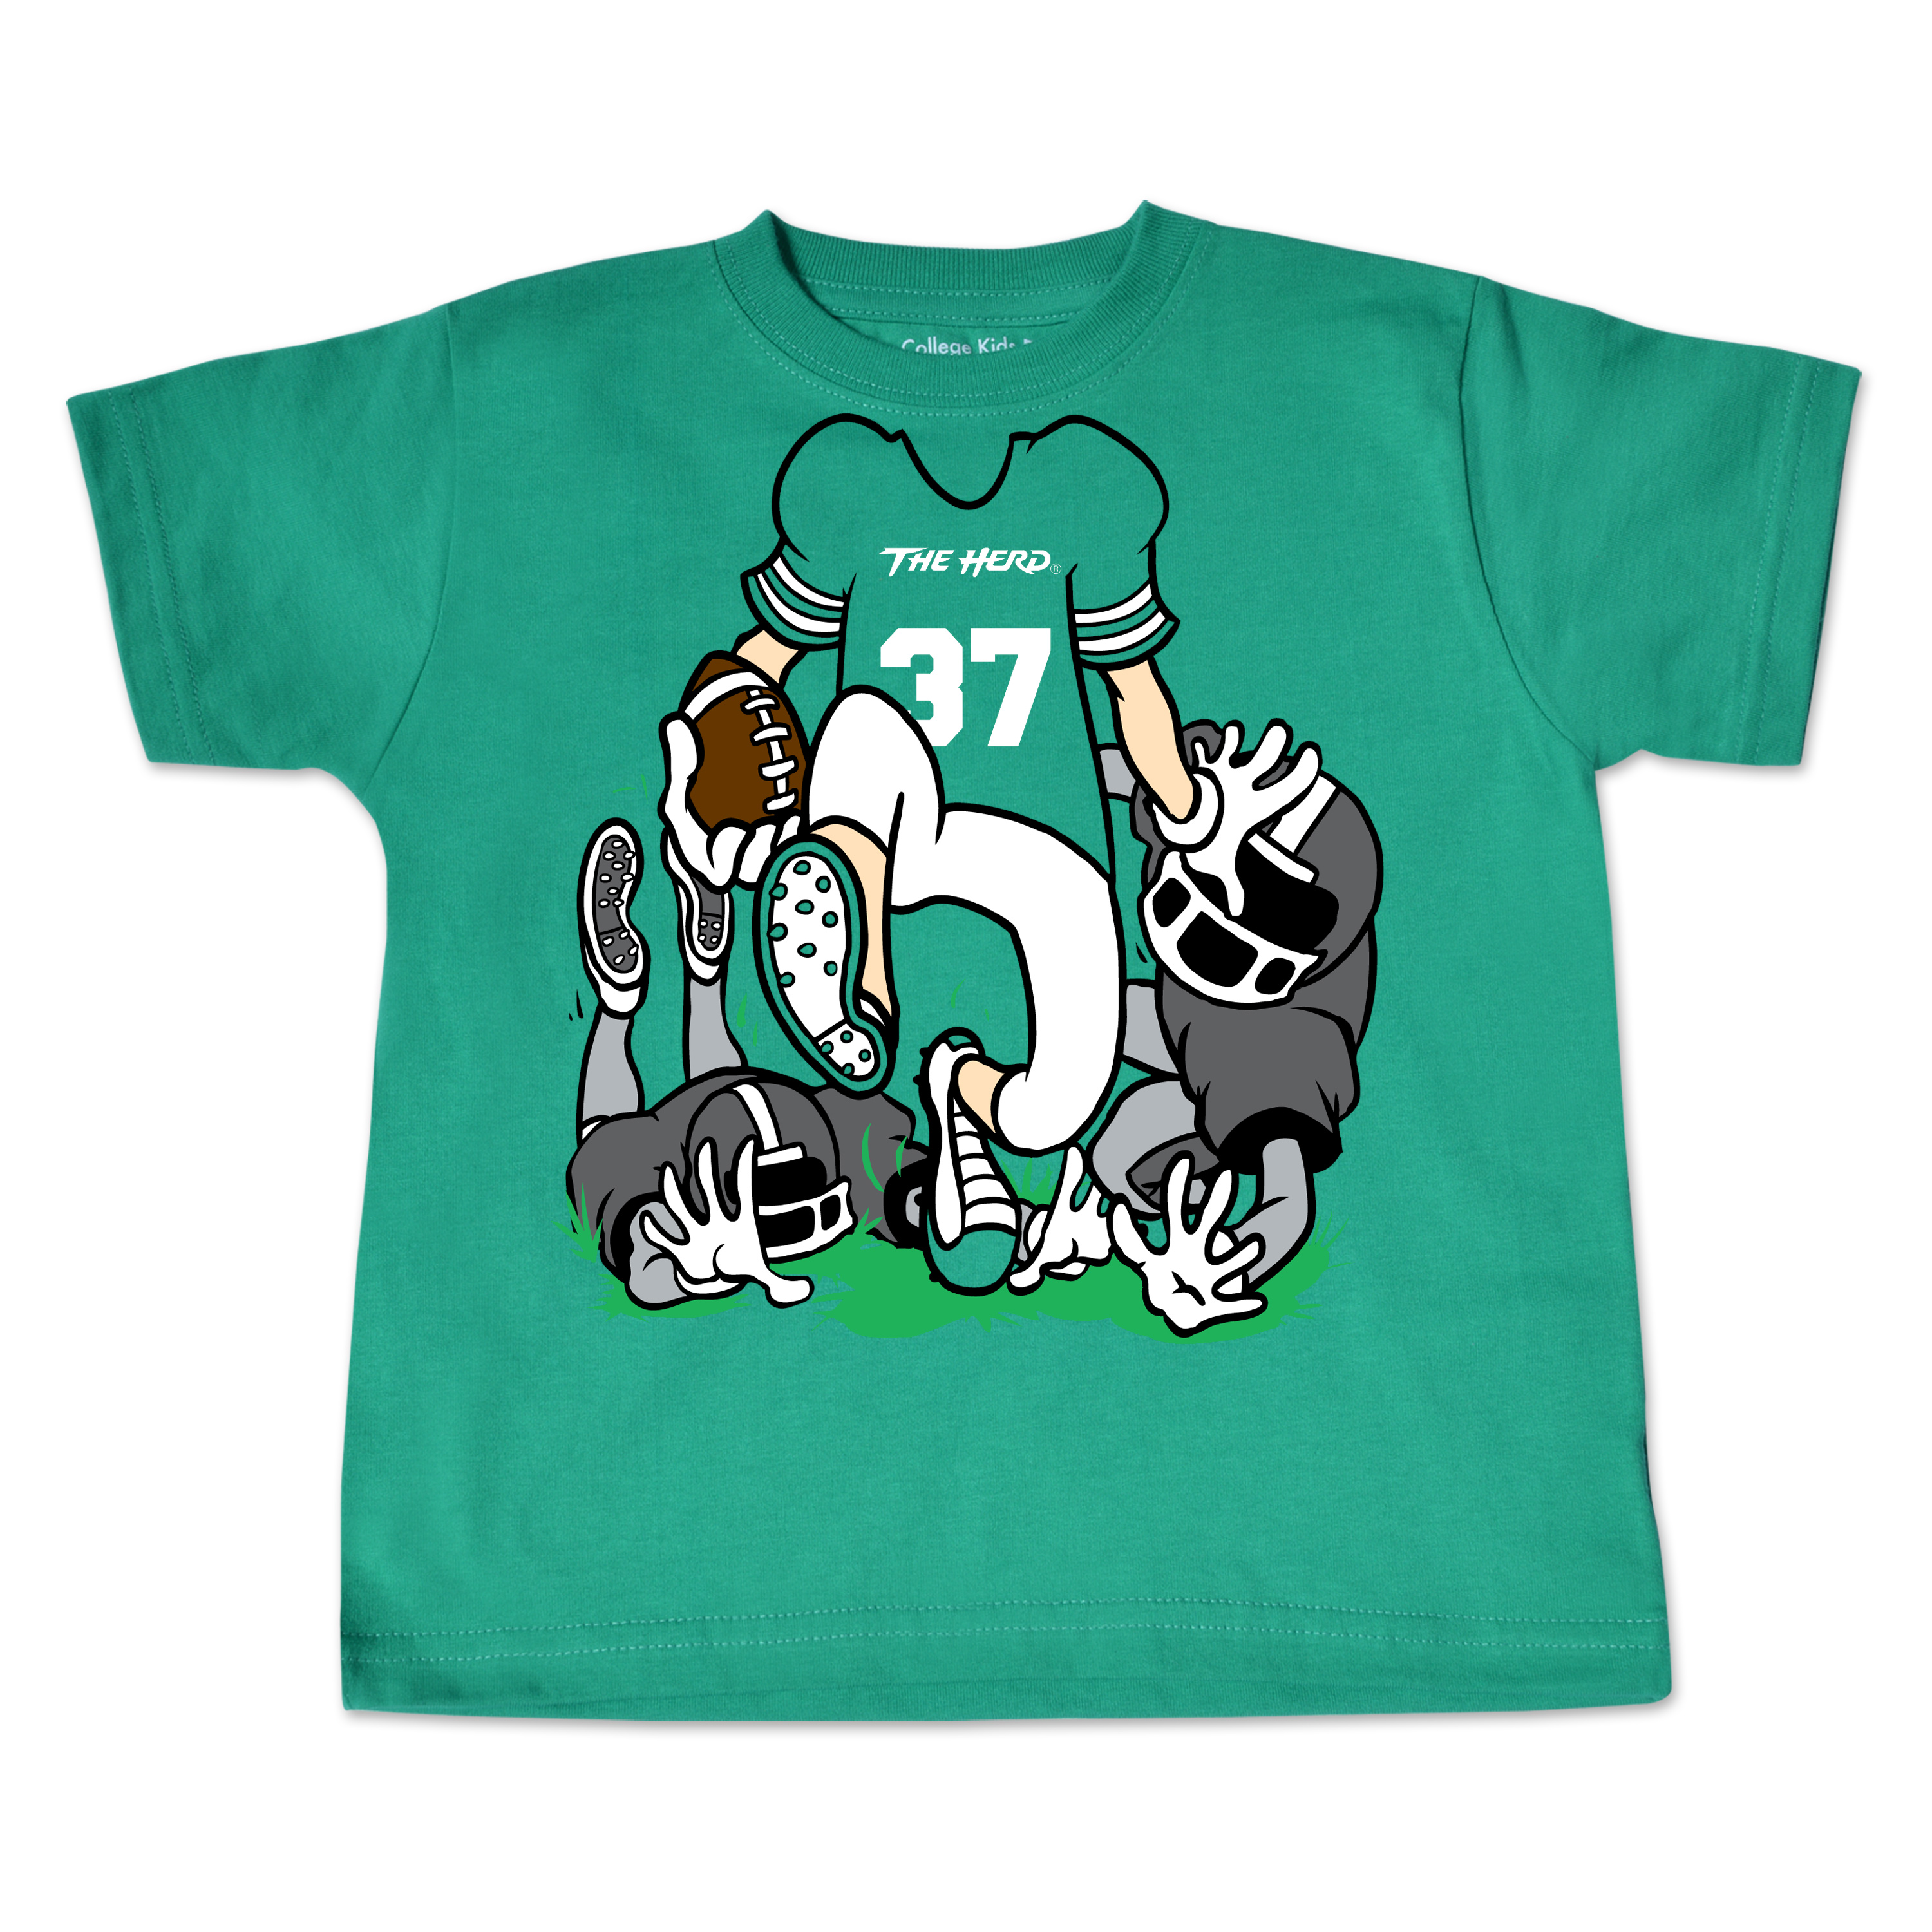 68723  <br> Toddler S/S Tee Headless Football Player  <br> 2T-3T-4T-5-6T  <br> $16.99